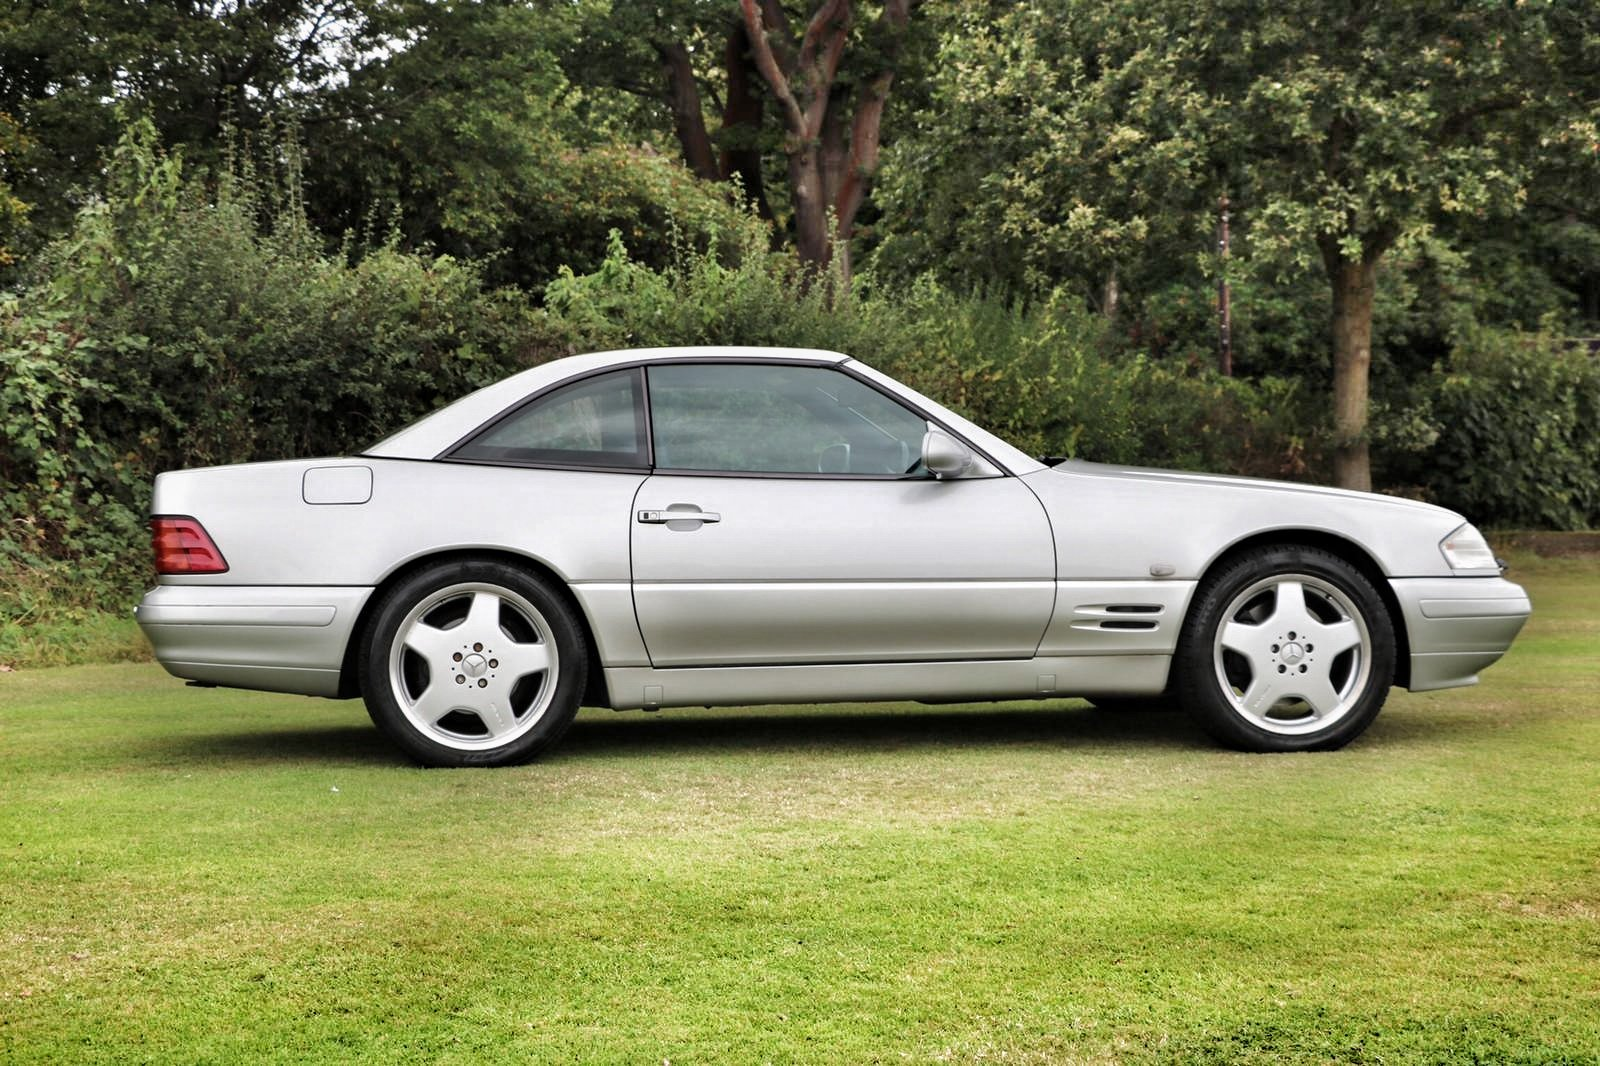 1999 Mercedes SL280 R129 Panoramic Roof, Low miles For Sale (picture 1 of 6)